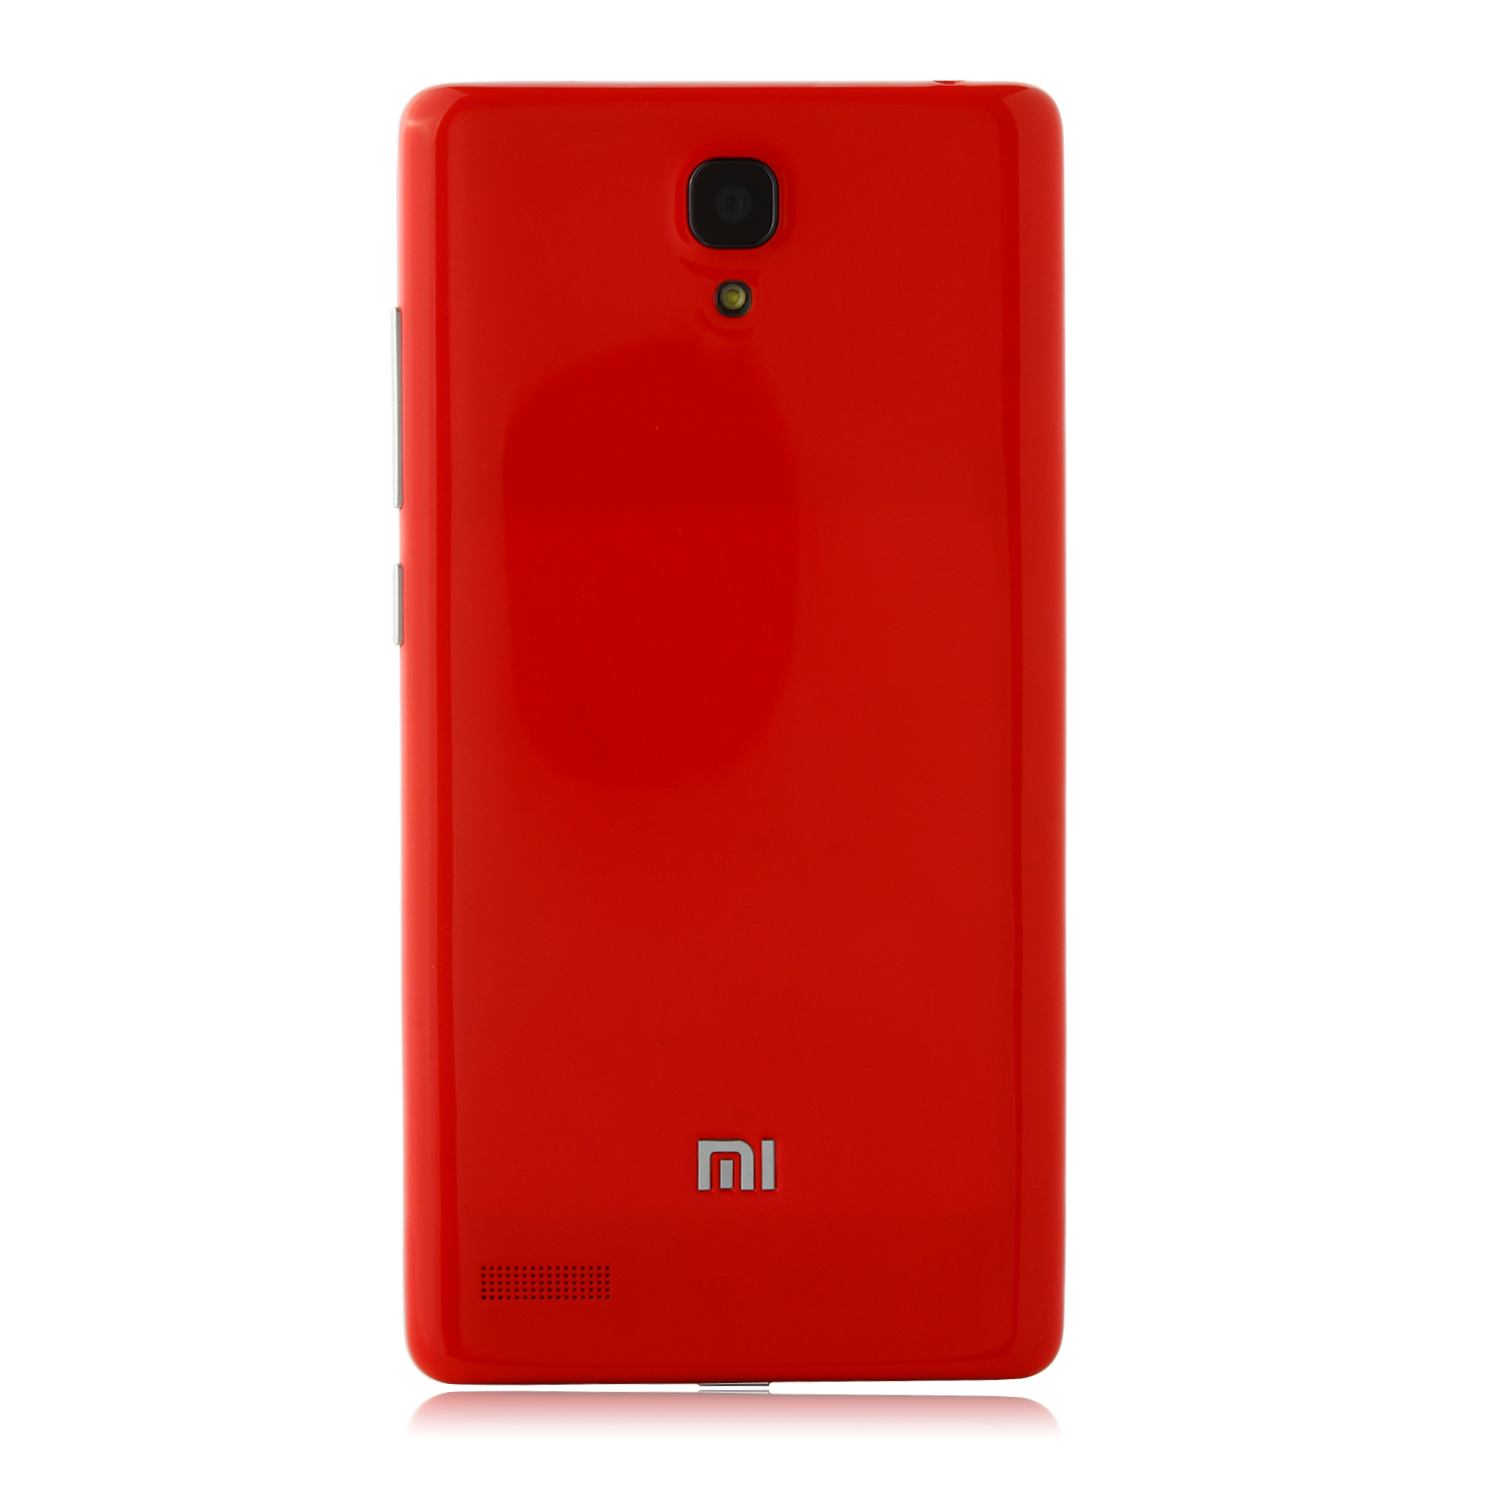 Battery Cover Back Case for XIAOMI Redmi Note Smartphone Red